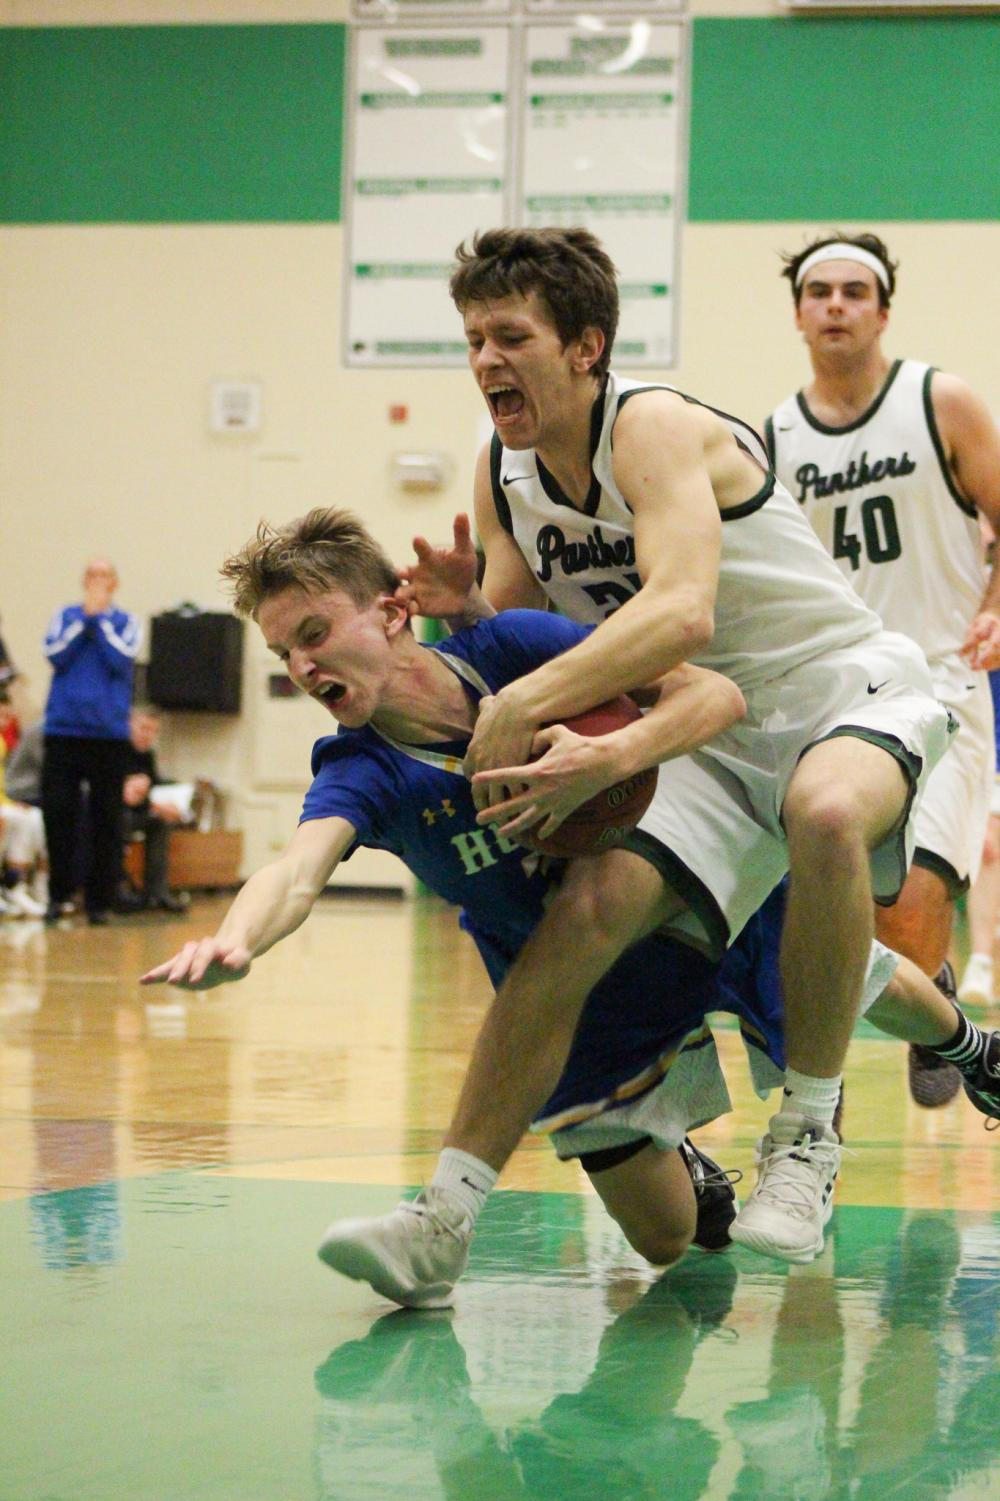 Senior Clayton Hood moves to get the ball from his Hutchinson opponent. The Panthers defeated the Salthawks 55-38.